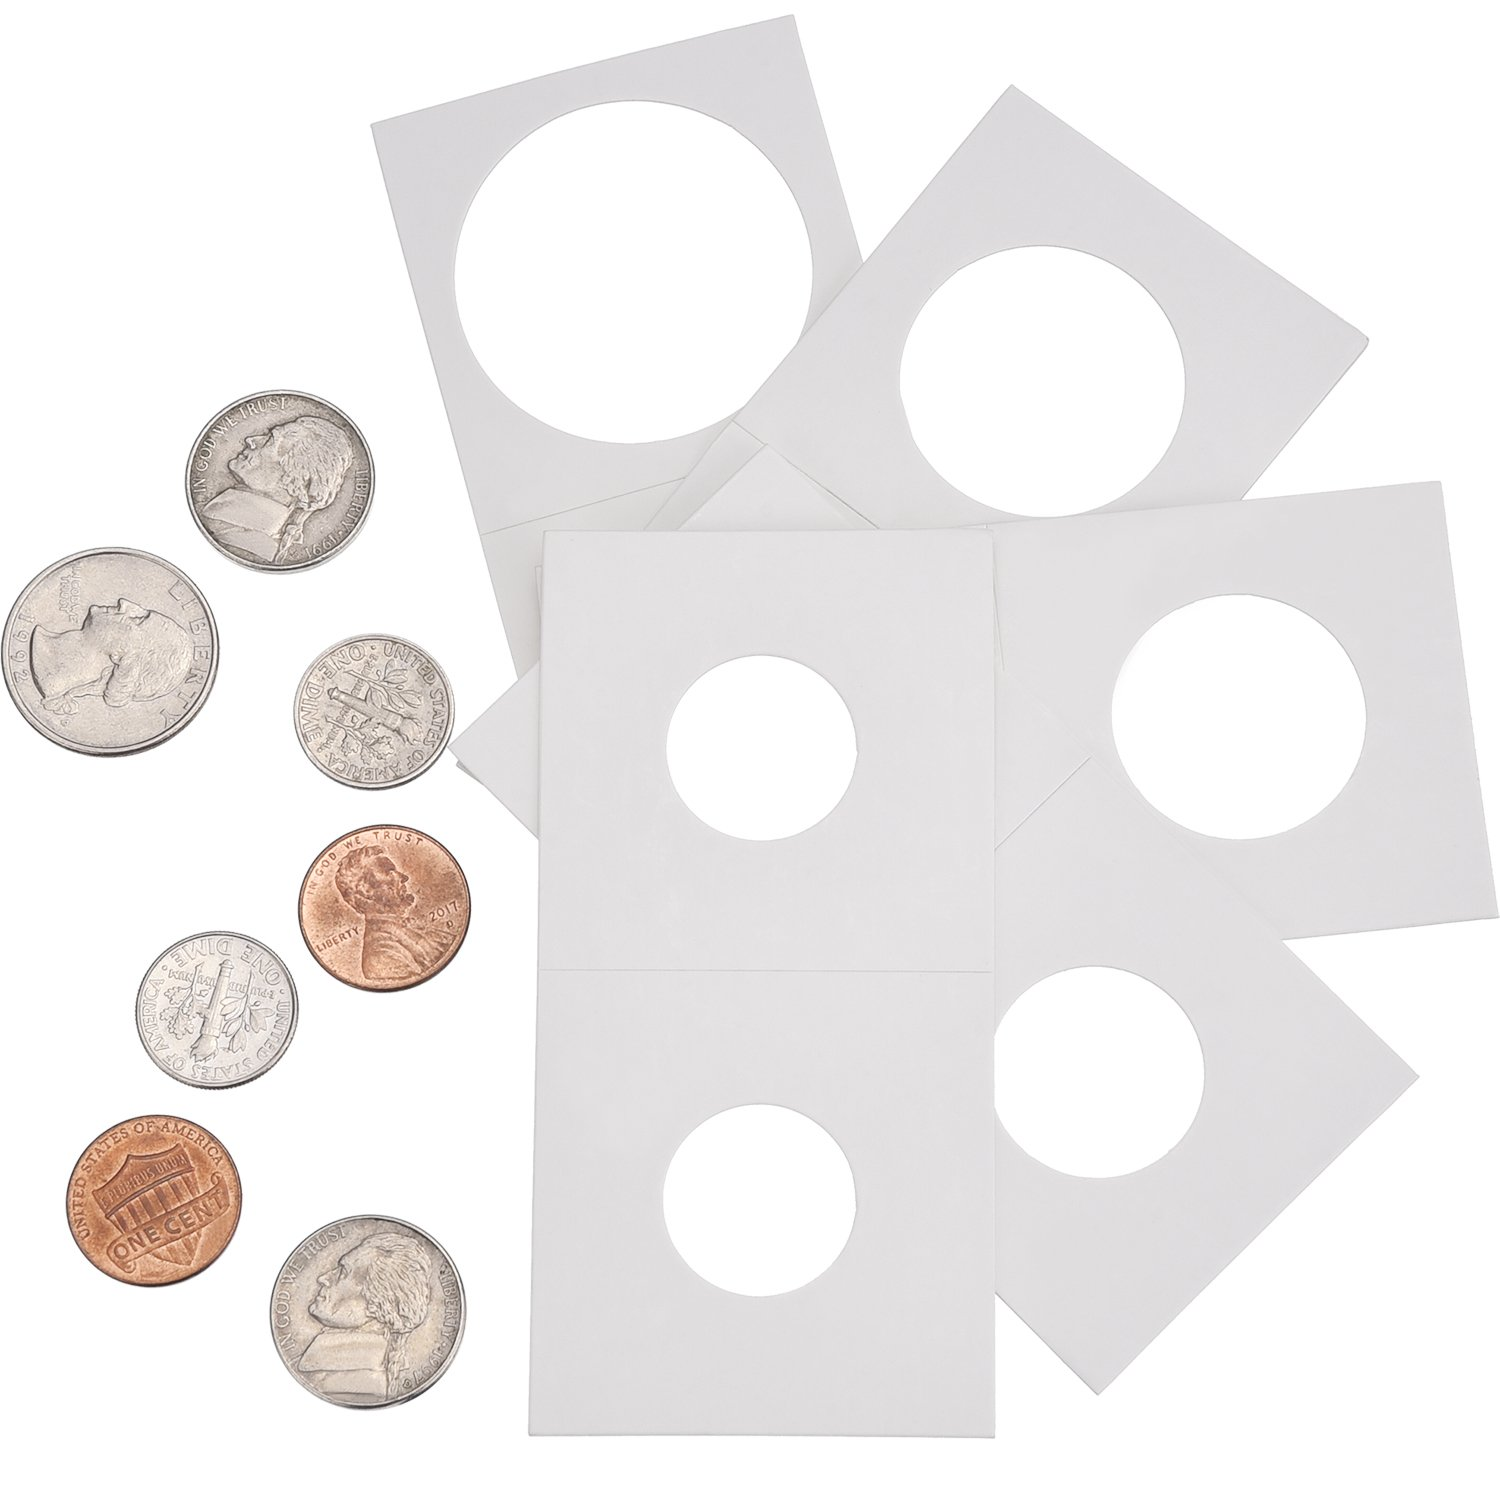 Hicarer 300 Pieces Cardboard Coin Holder Flip Mega Assortment, 2 by 2 Inch for Coin Collection Supplies (6 Sizes) by Hicarer (Image #7)